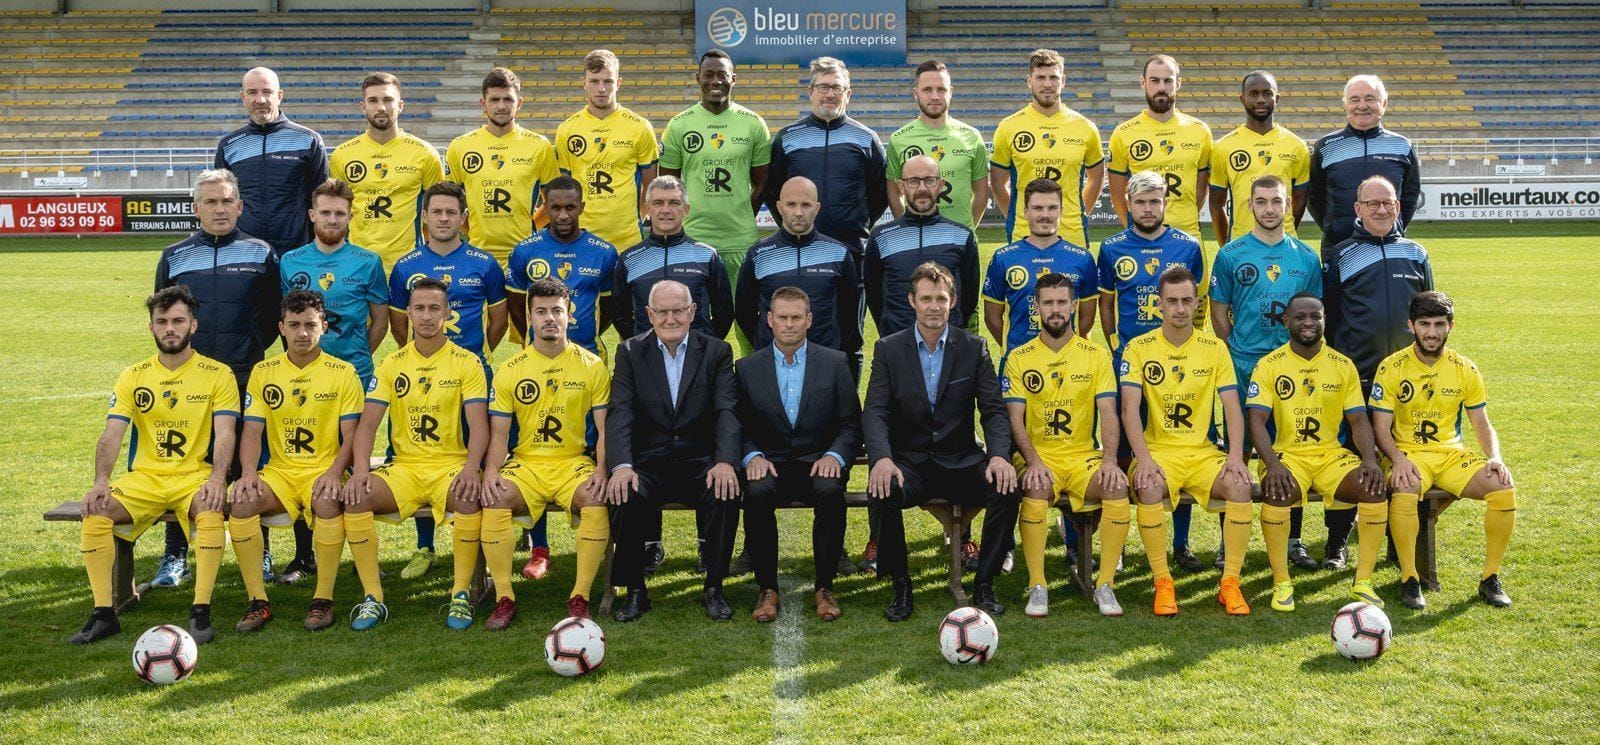 Les Equipes National 2 Stade Briochin Site Officiel